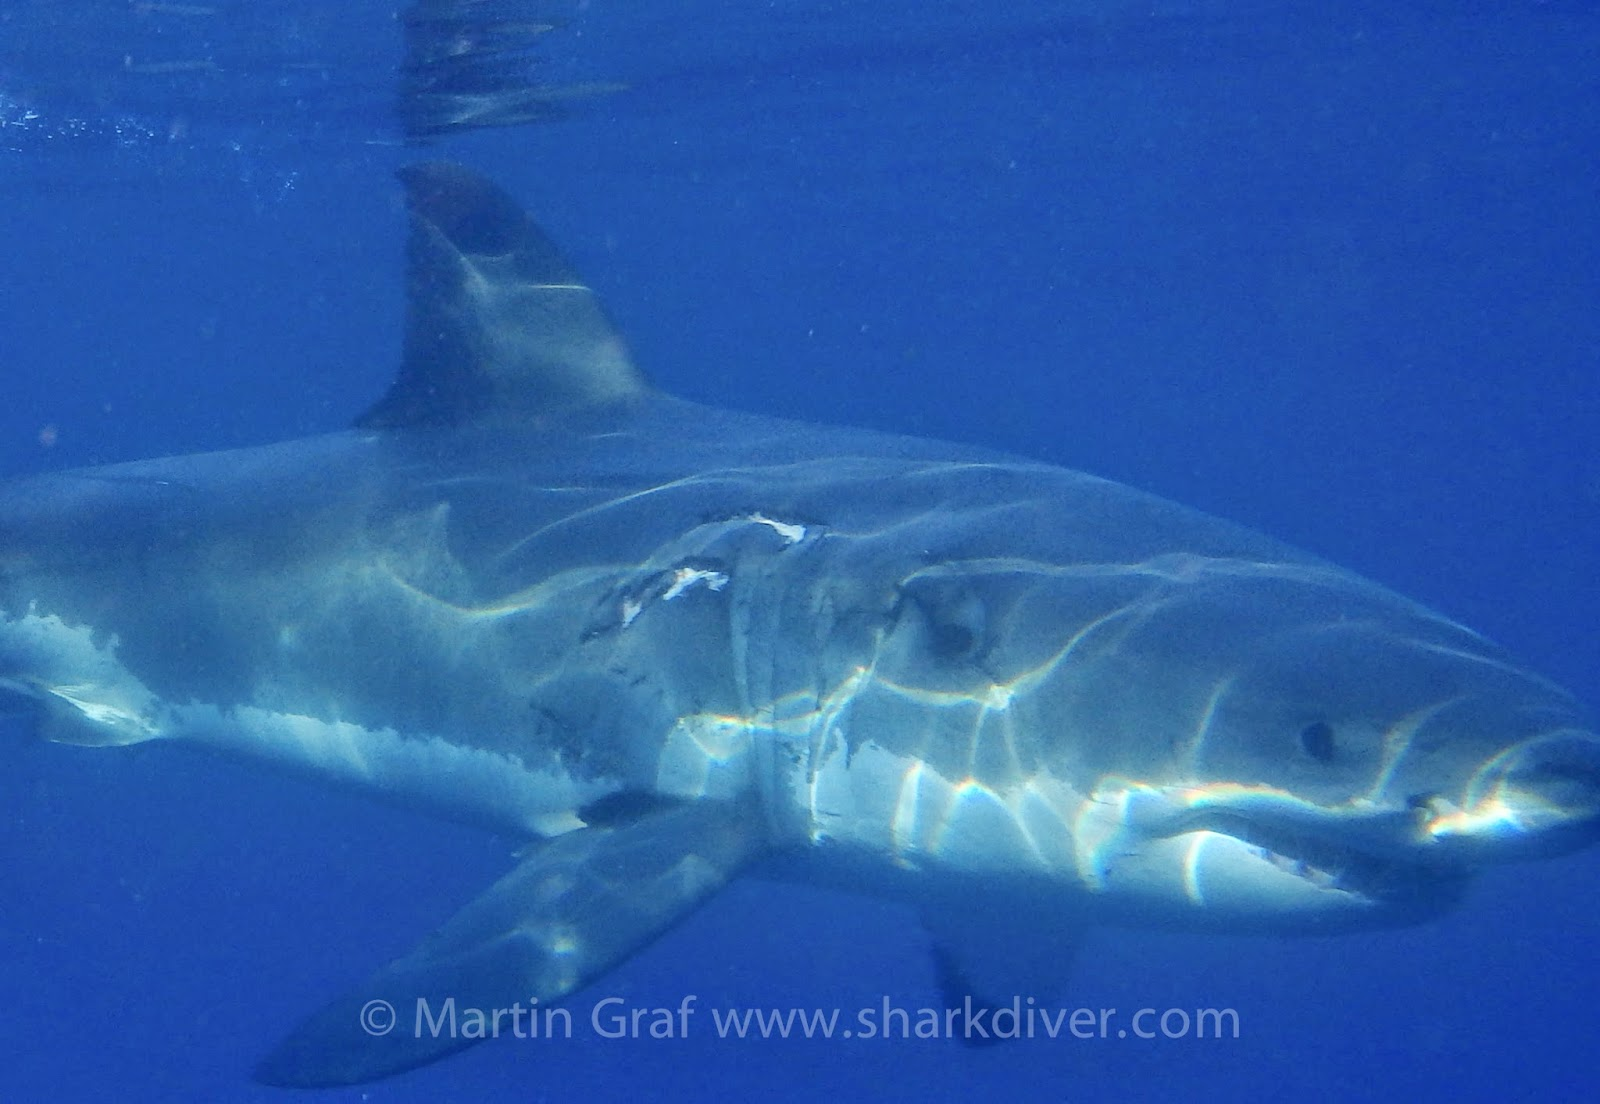 These Pictures All Show Great White Sharks With Bite Marks From Their Own Kind It Is Rare To See An Great White Shark That Doesnt Have Some Kind Of